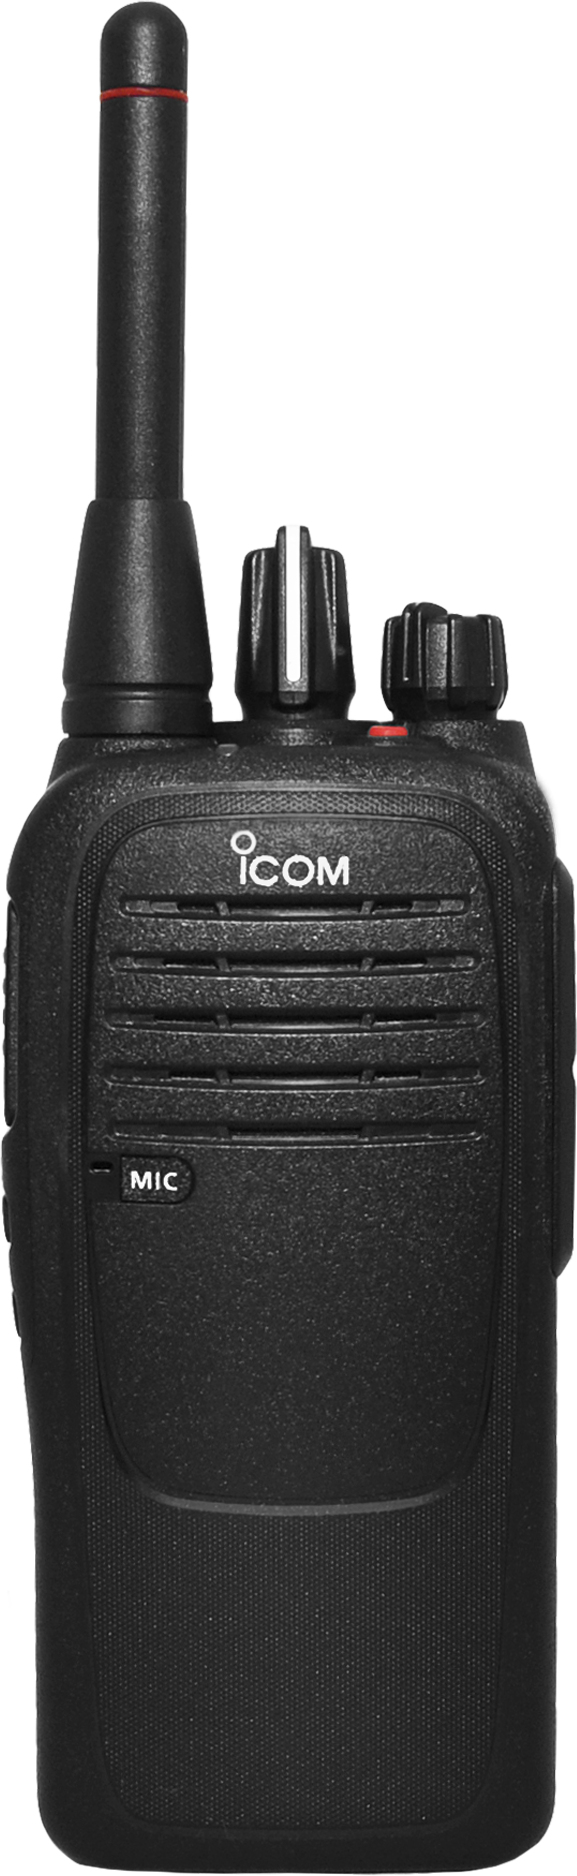 Icom IC-F29SR featured image